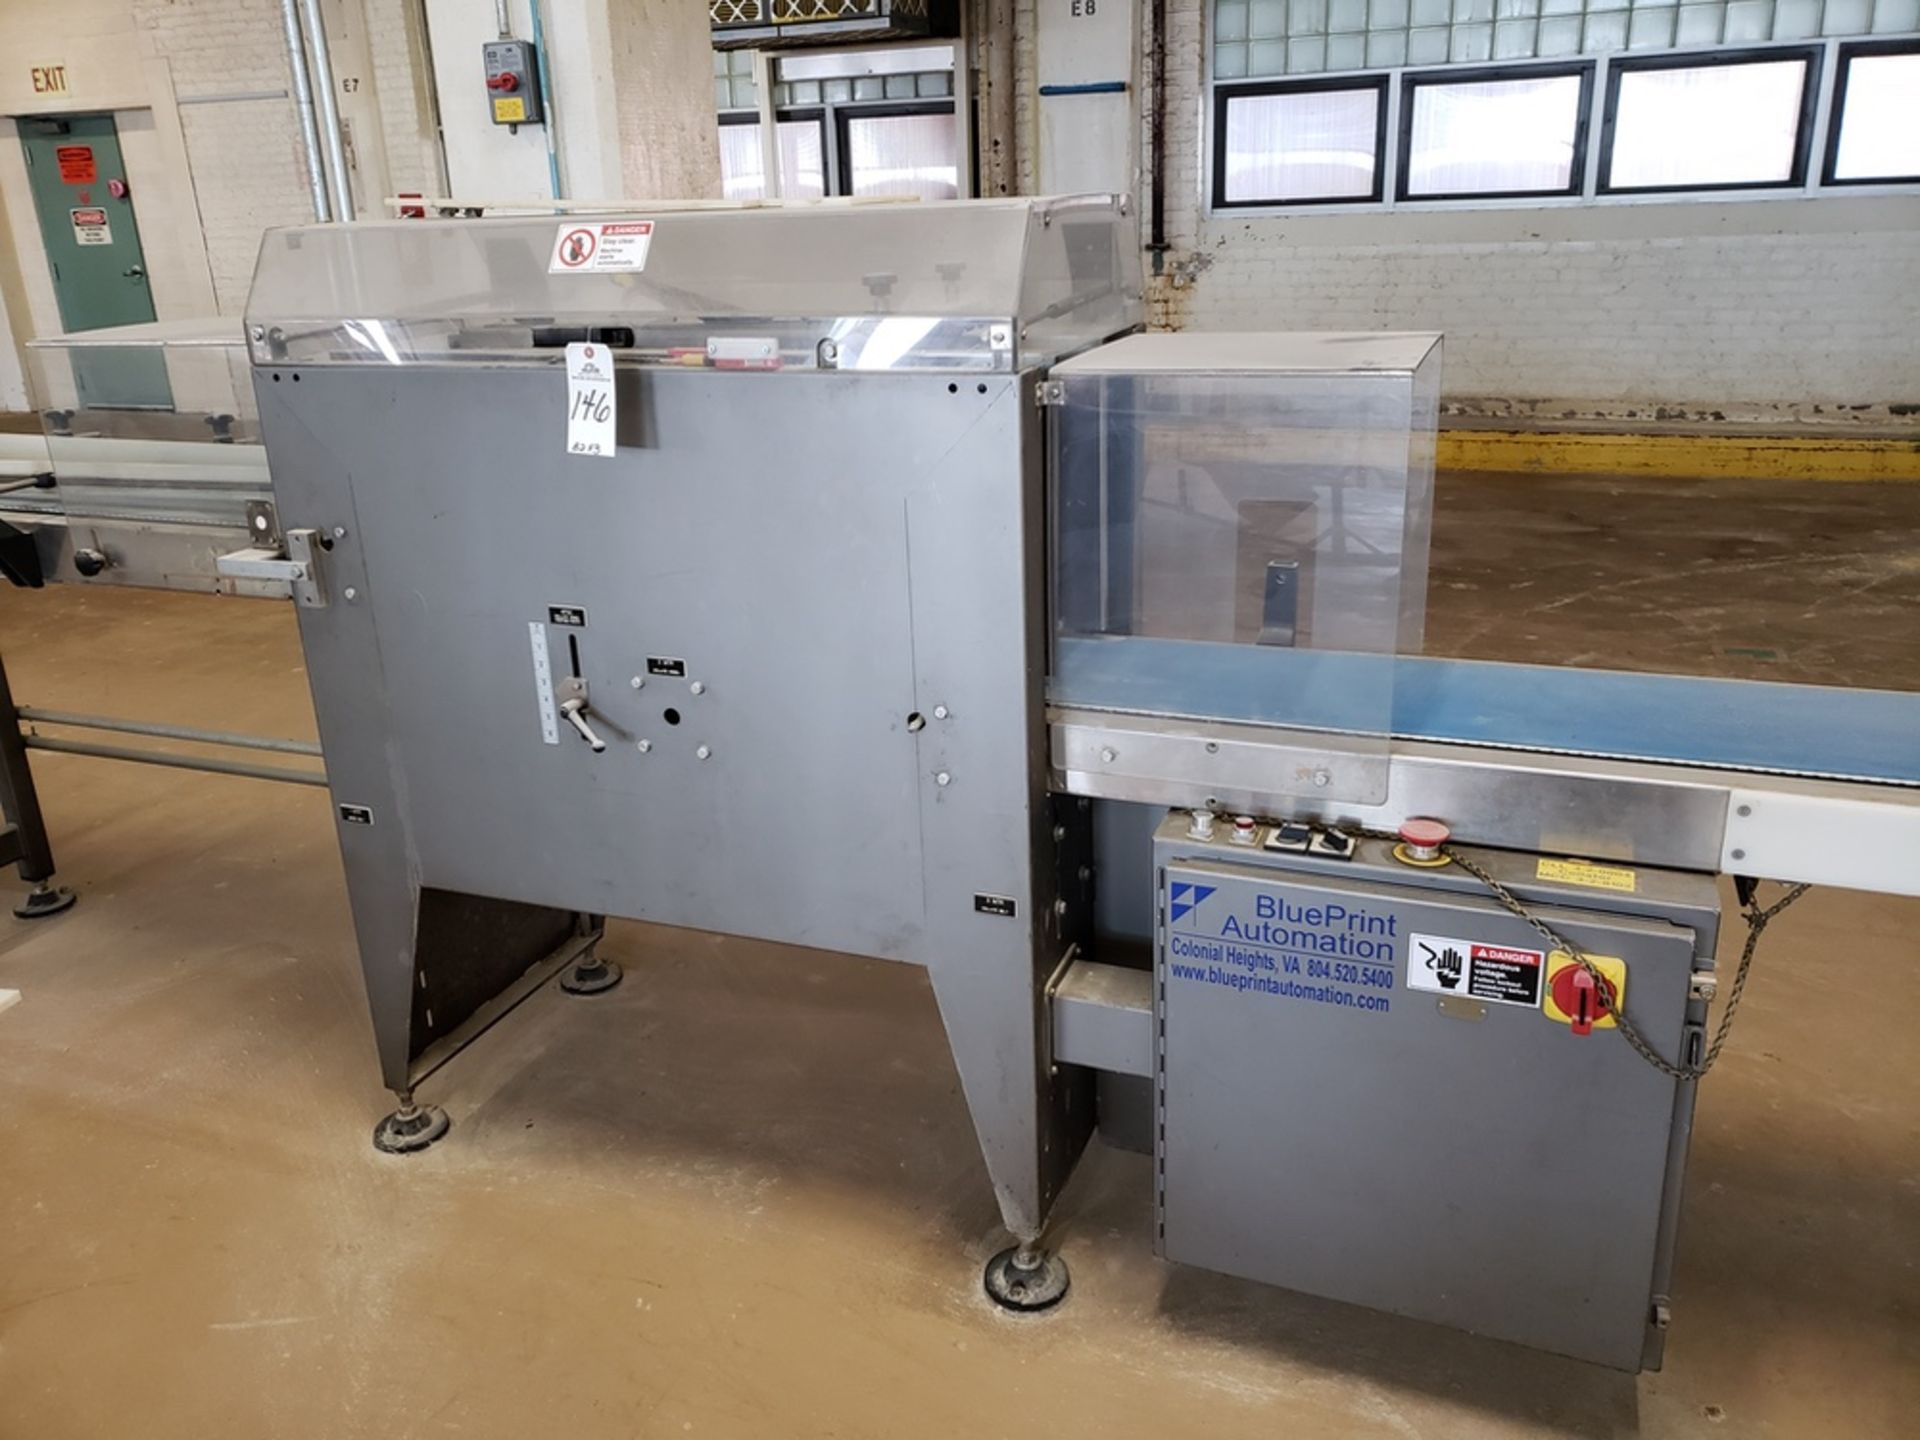 Lot 146 - Blue Point Automation Collator | Rig Fee: $400